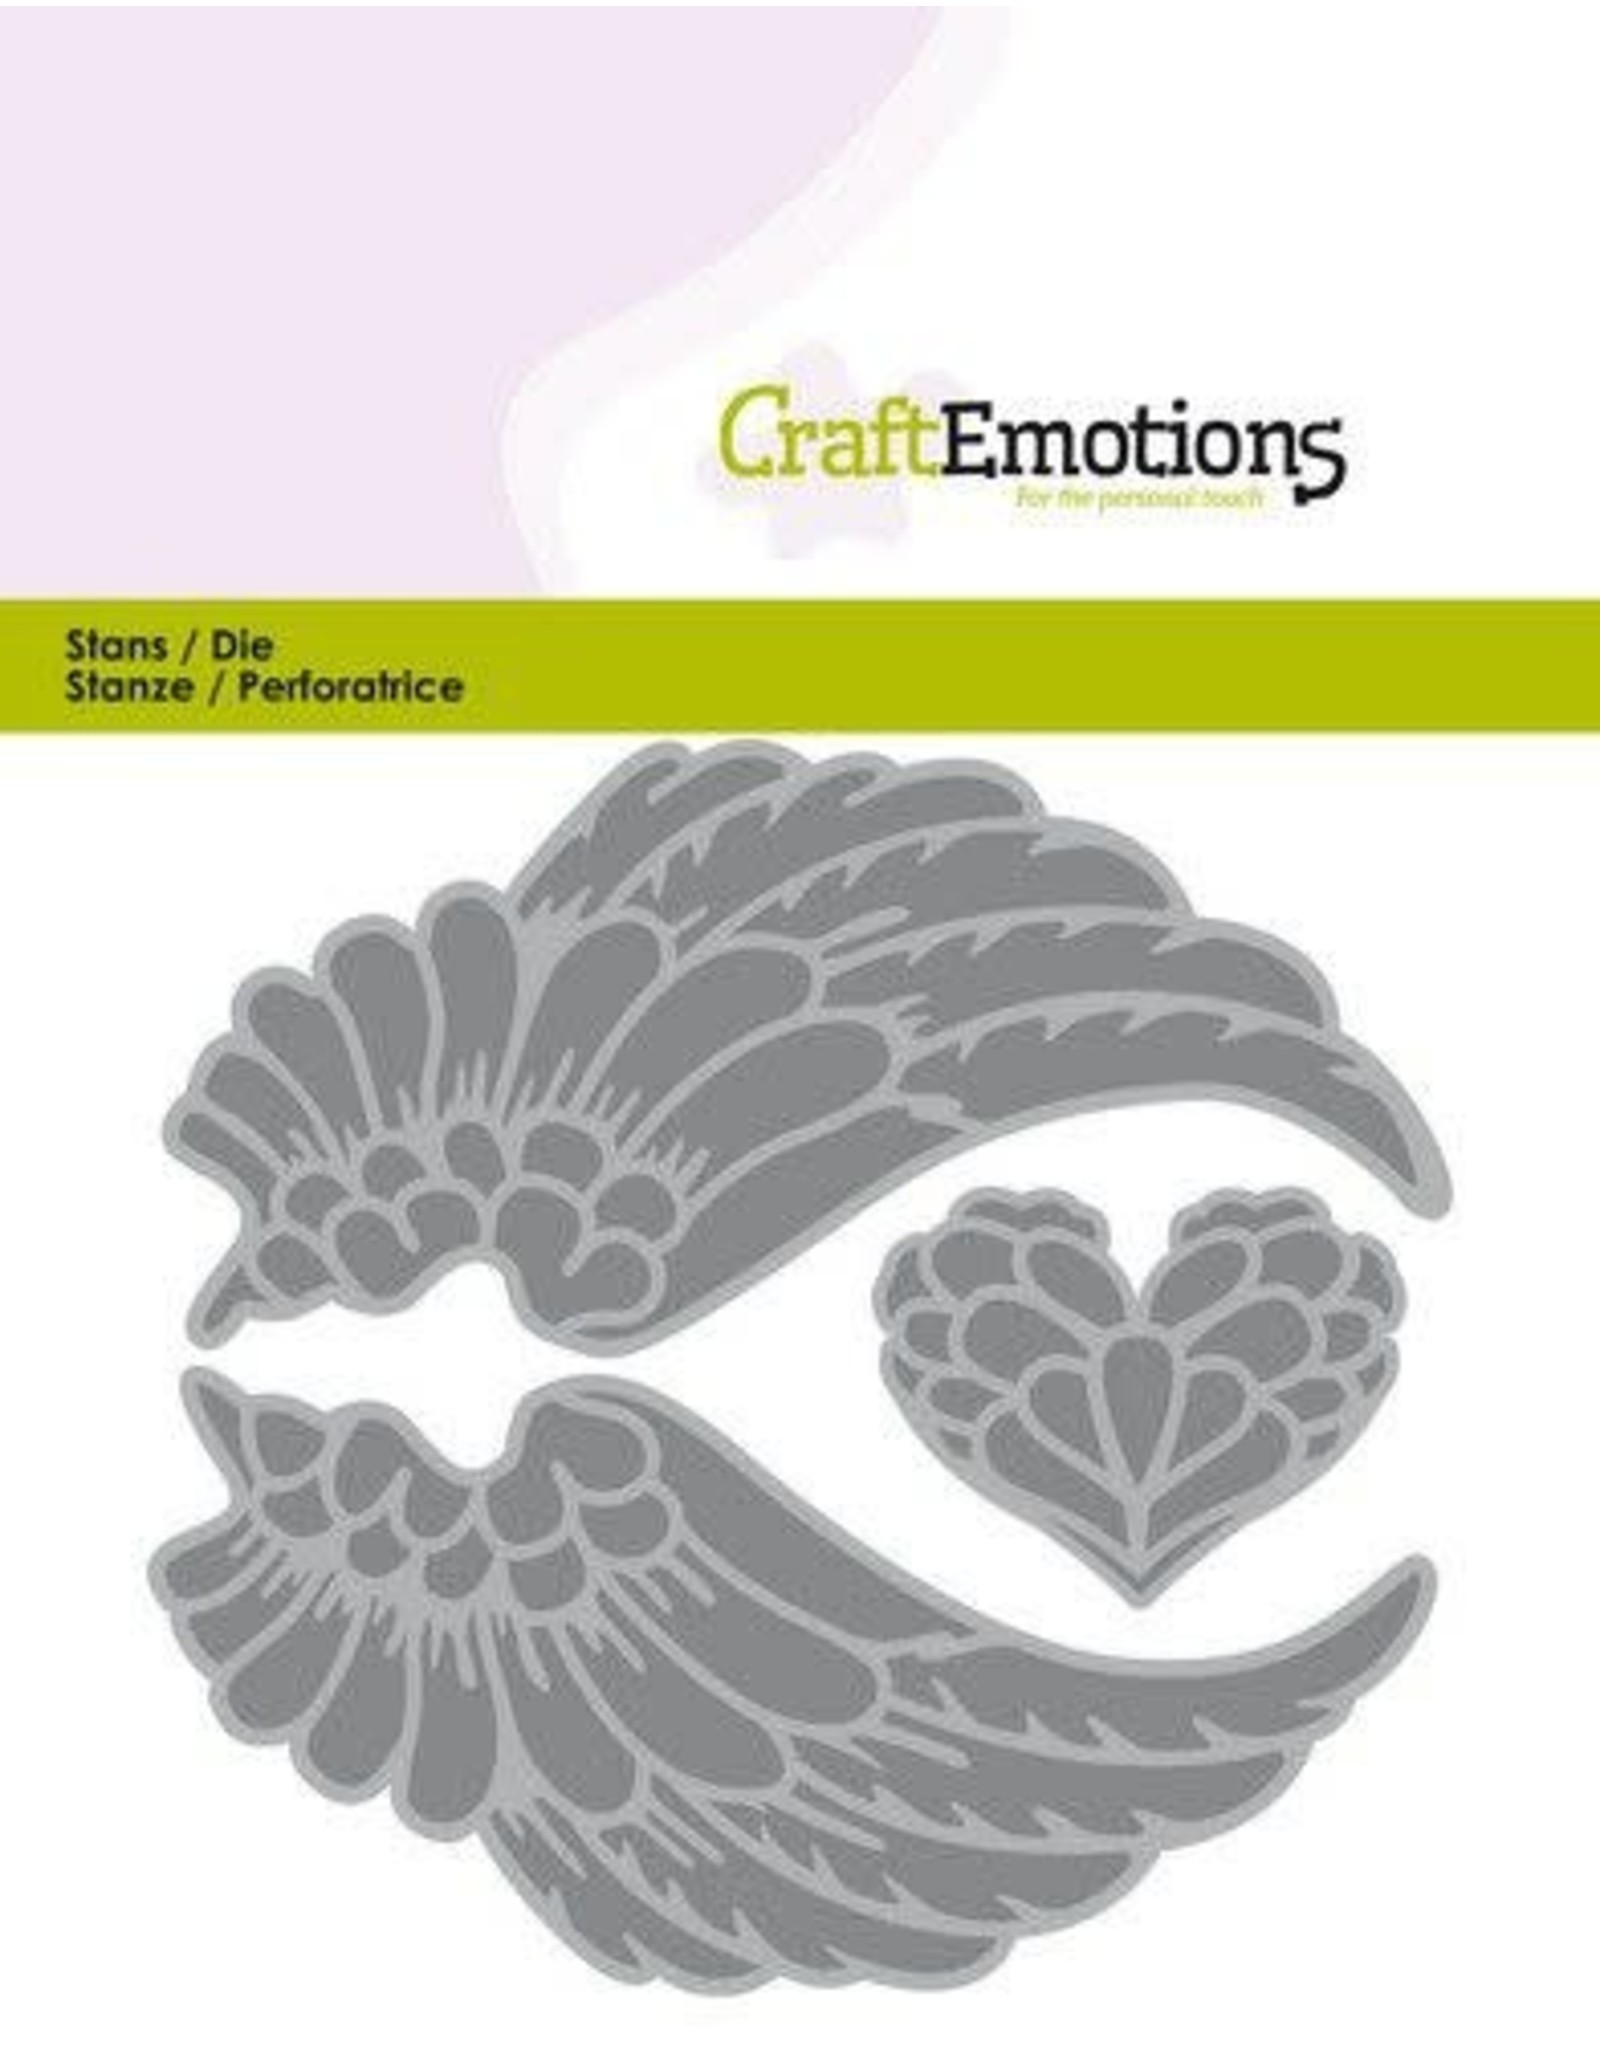 Craft Emotions CraftEmotions Die - vleugels engelen Card 11x9cm - 3,8cm - 9cm